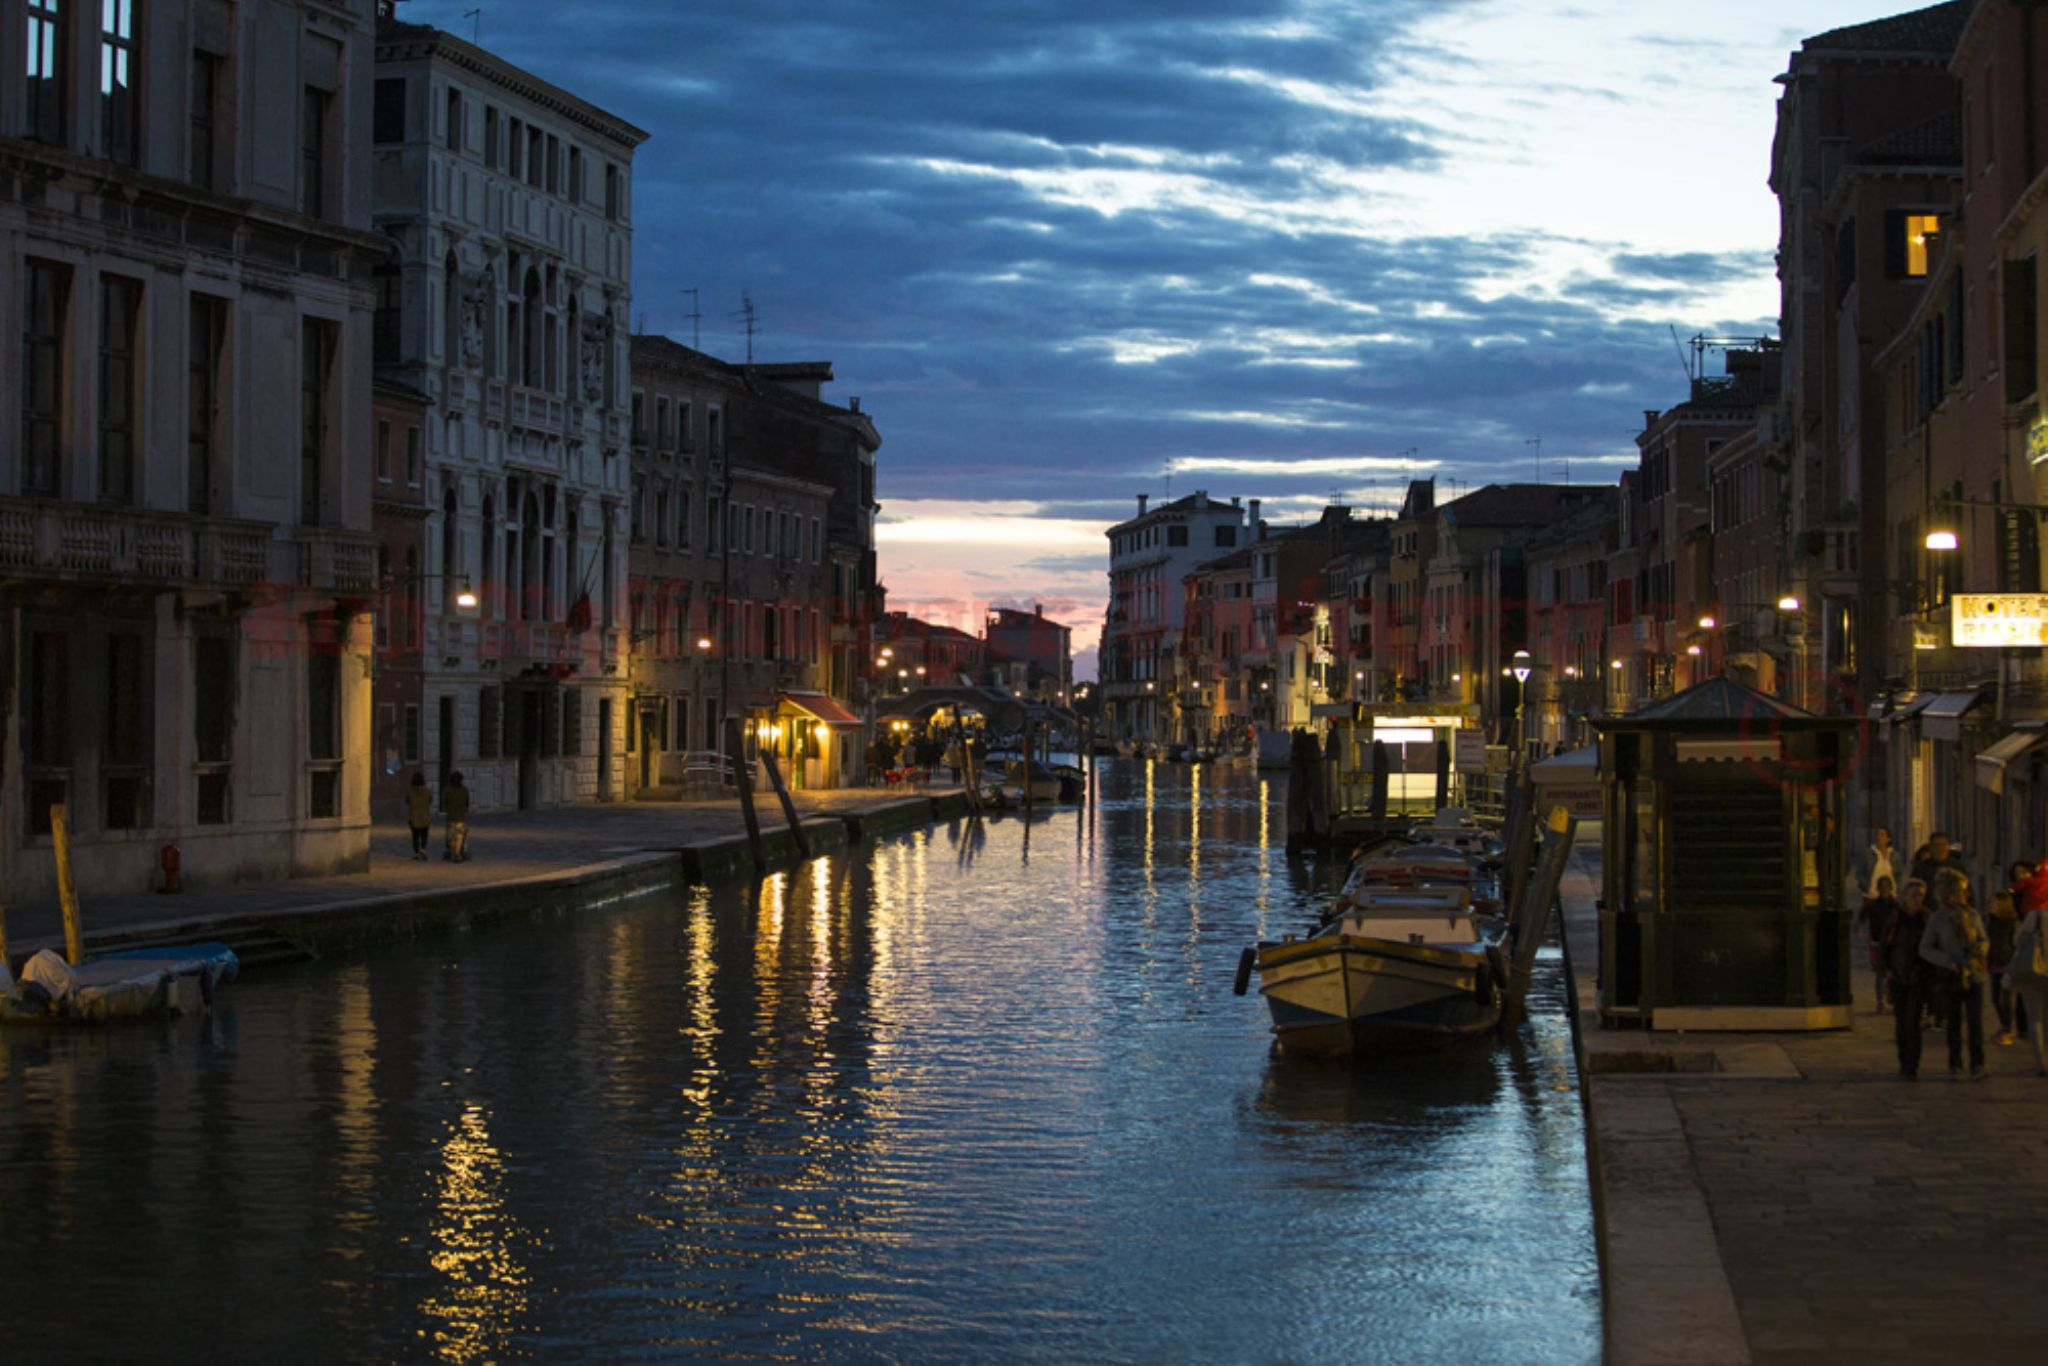 Evening in Venice - Canal by robphot